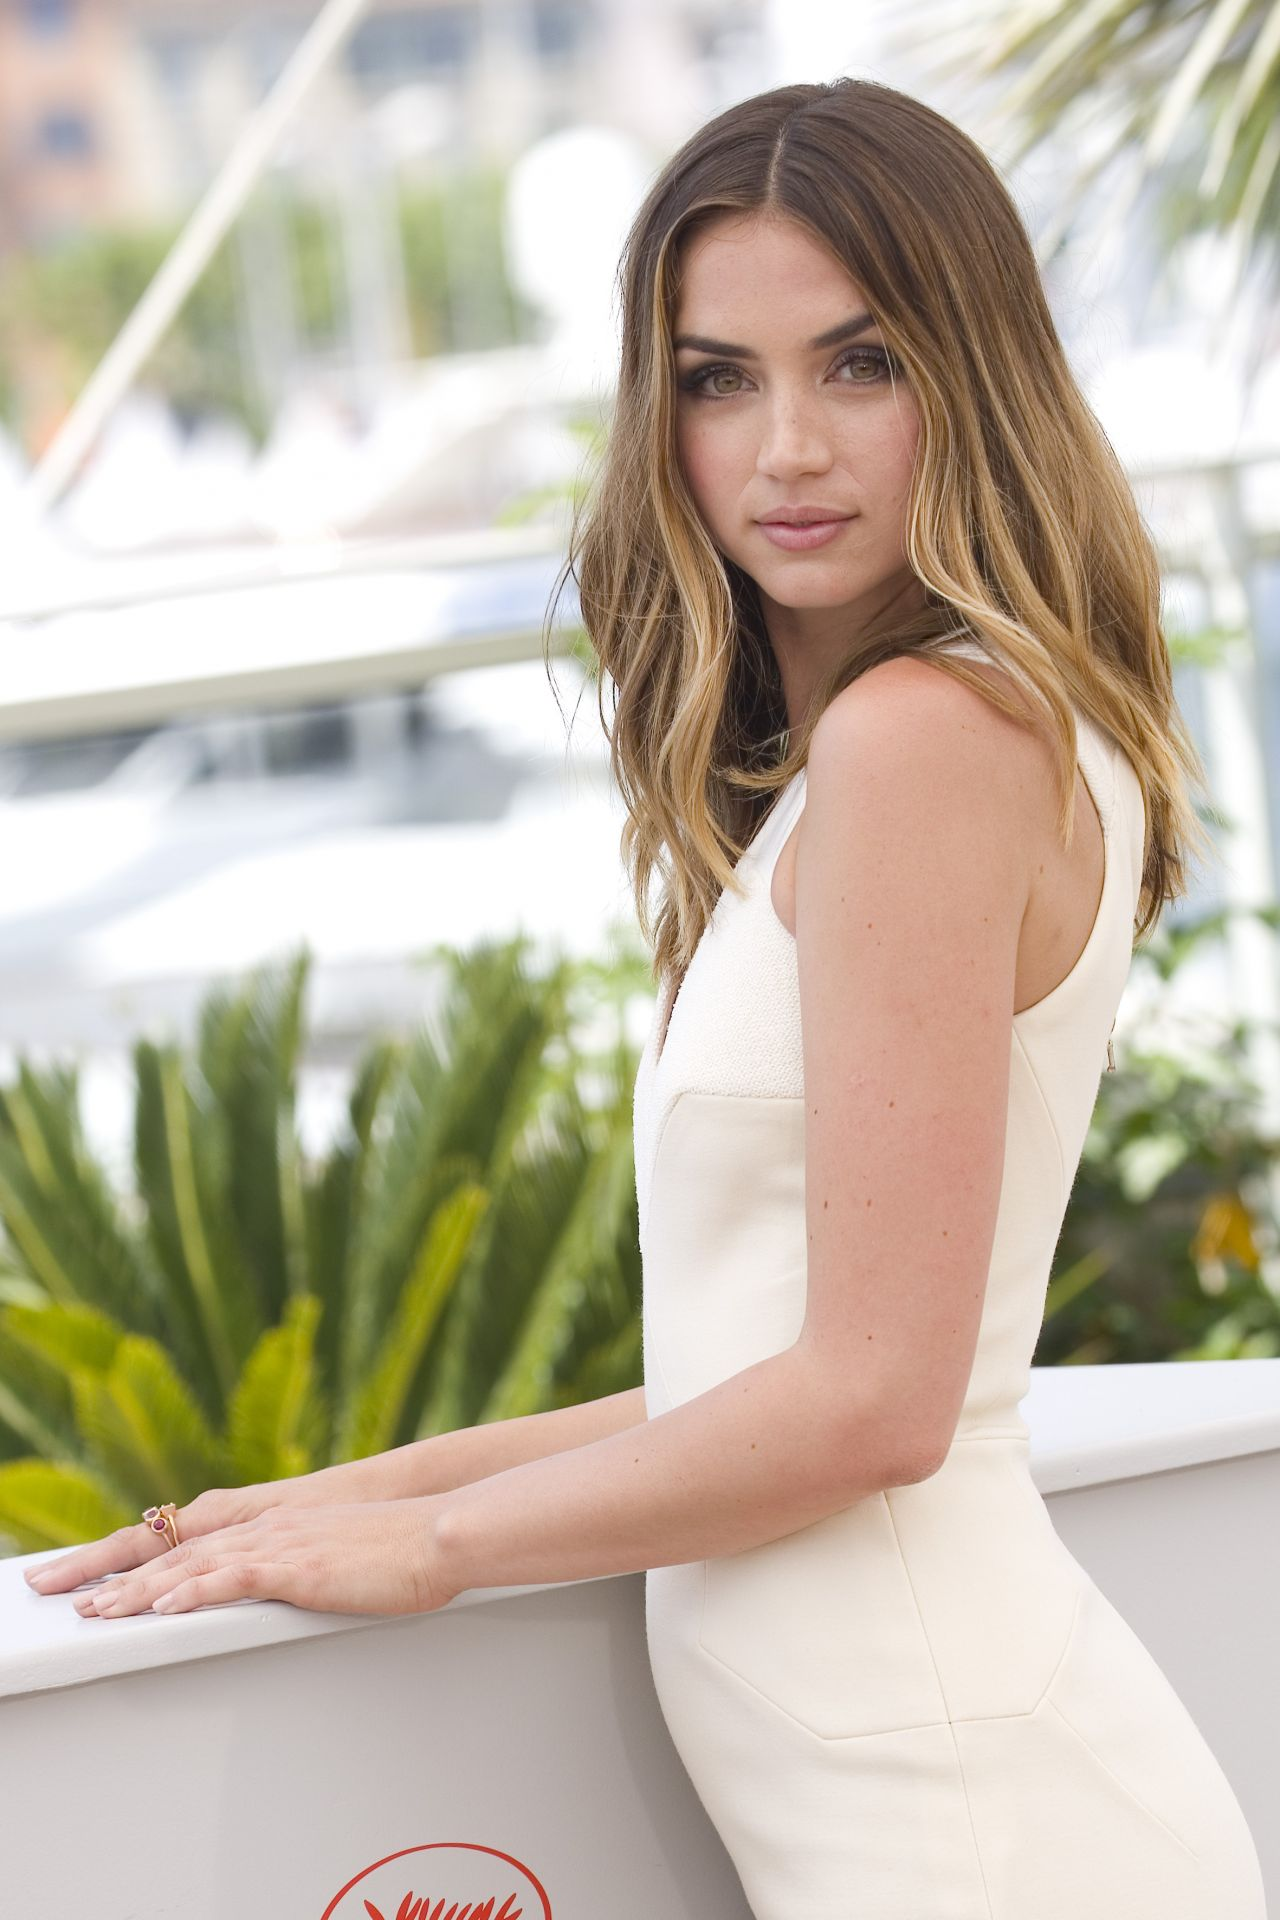 Ana de armas party and lies - 2 1